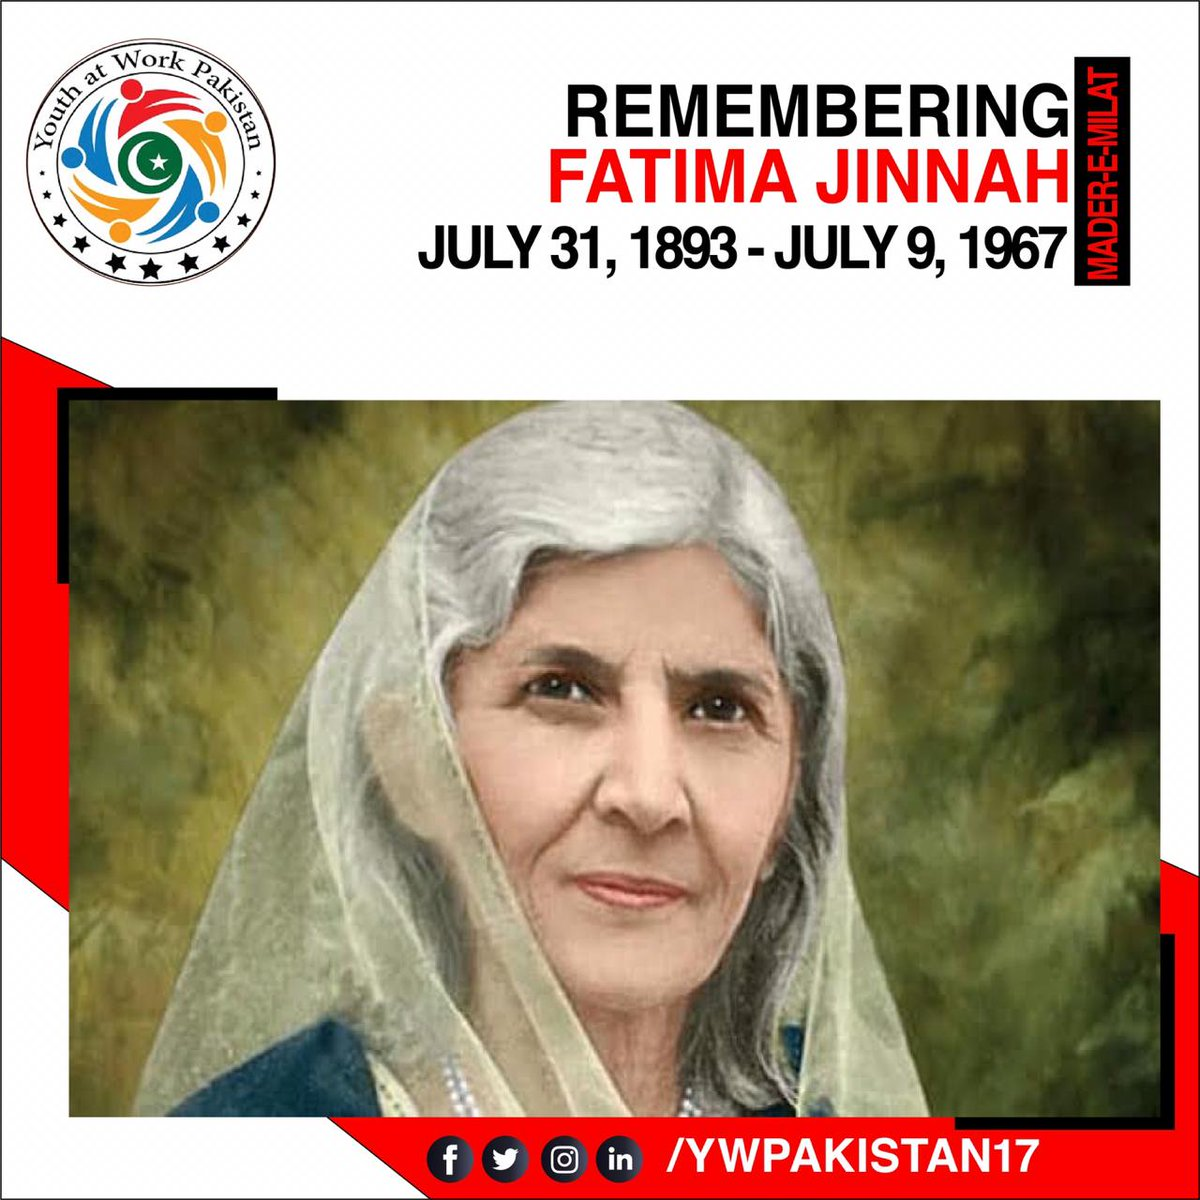 Fatima Jinnah is a role model for all, especially for all Pakistani women. She is a source of inspiration. Today marks her death anniversary. Let us remember her fondly and gain lessons from her.  Regards: Team YWP #fatima #jinnah #volunteering #team #anniversary #women #remember https://t.co/jnfbQlM3SH